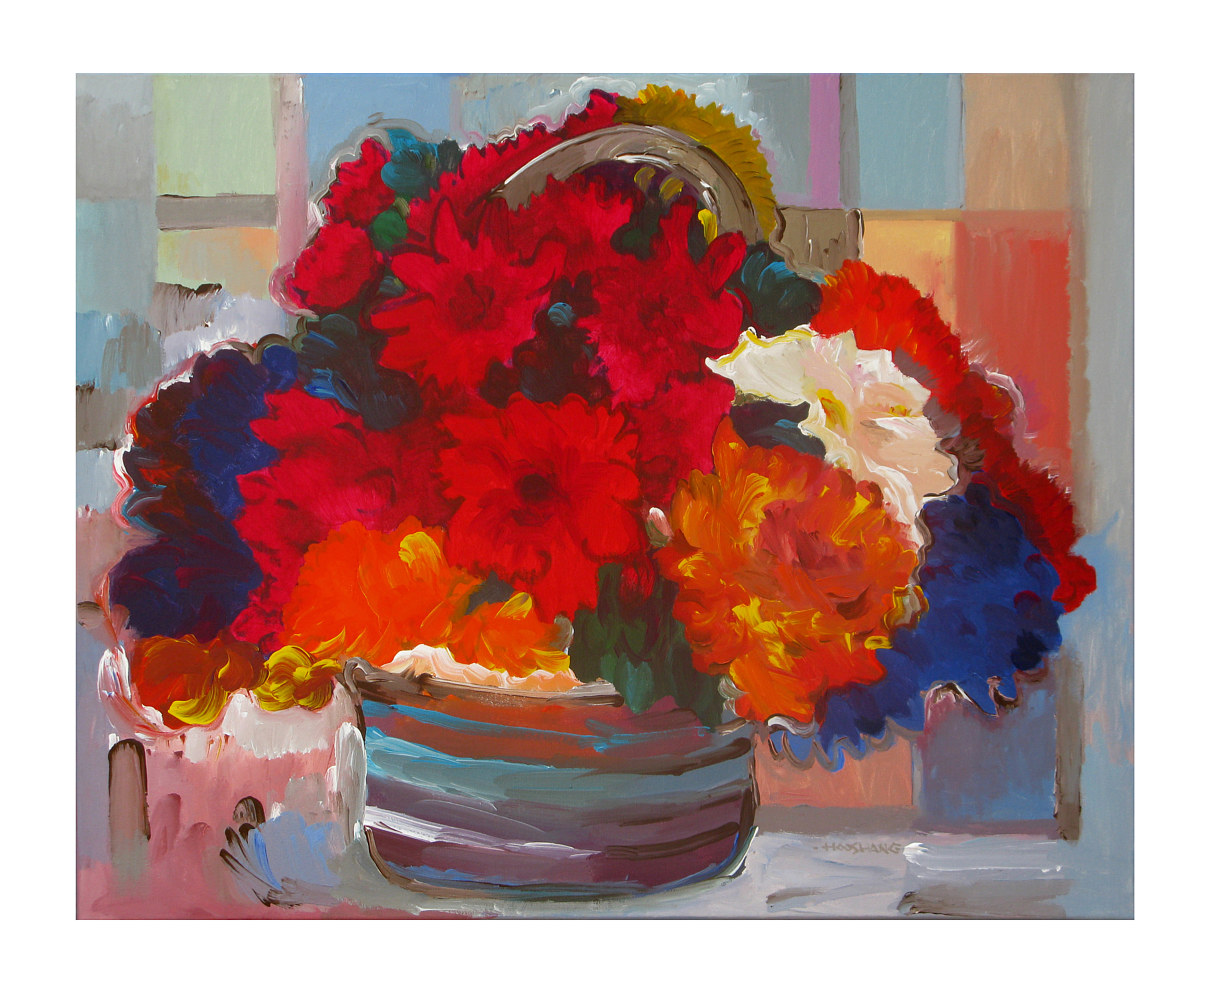 Acrylic painting Basket of Flowers, 24x30 inches by Hooshang Khorasani